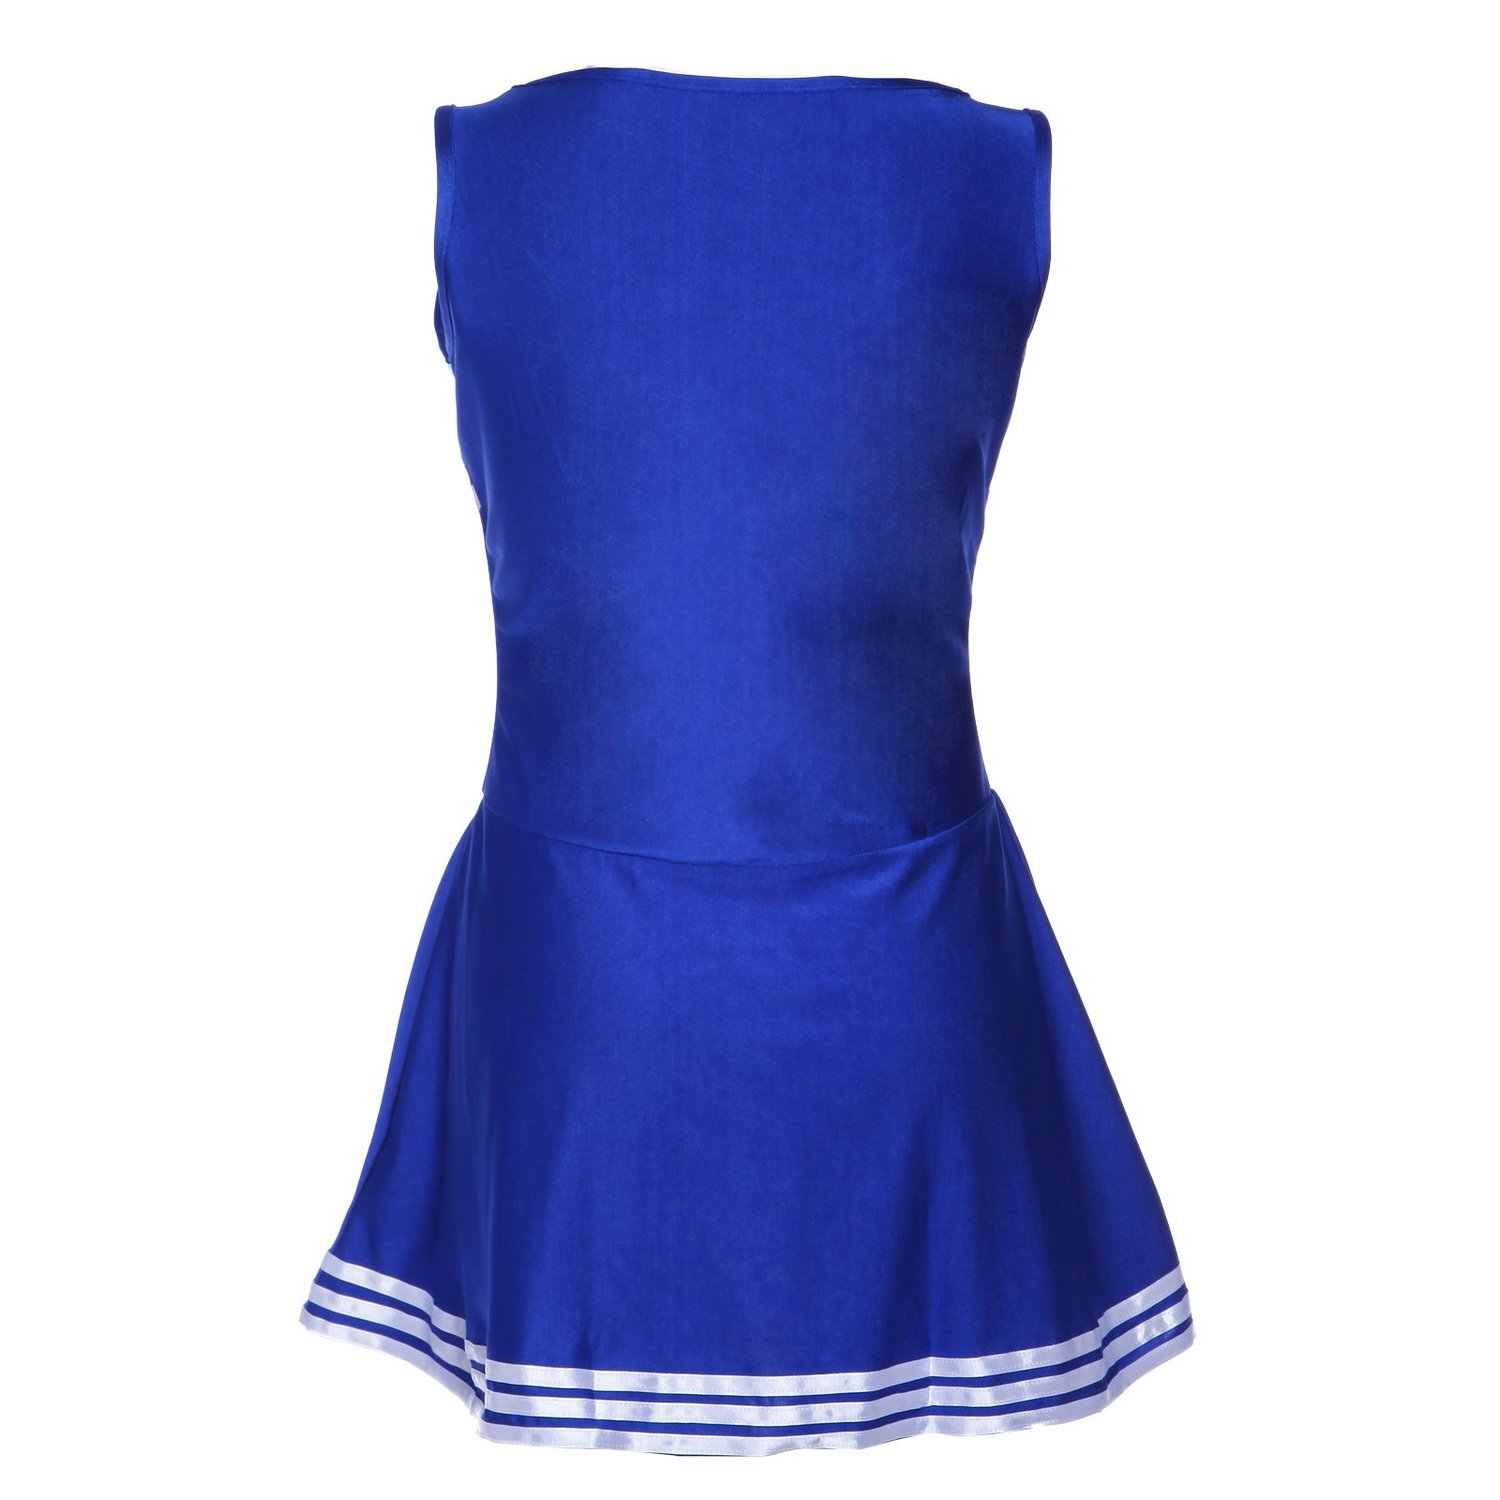 JHO-Pom-pom girl tank top dress cheer leader blue suit costume XL (42-44) school football